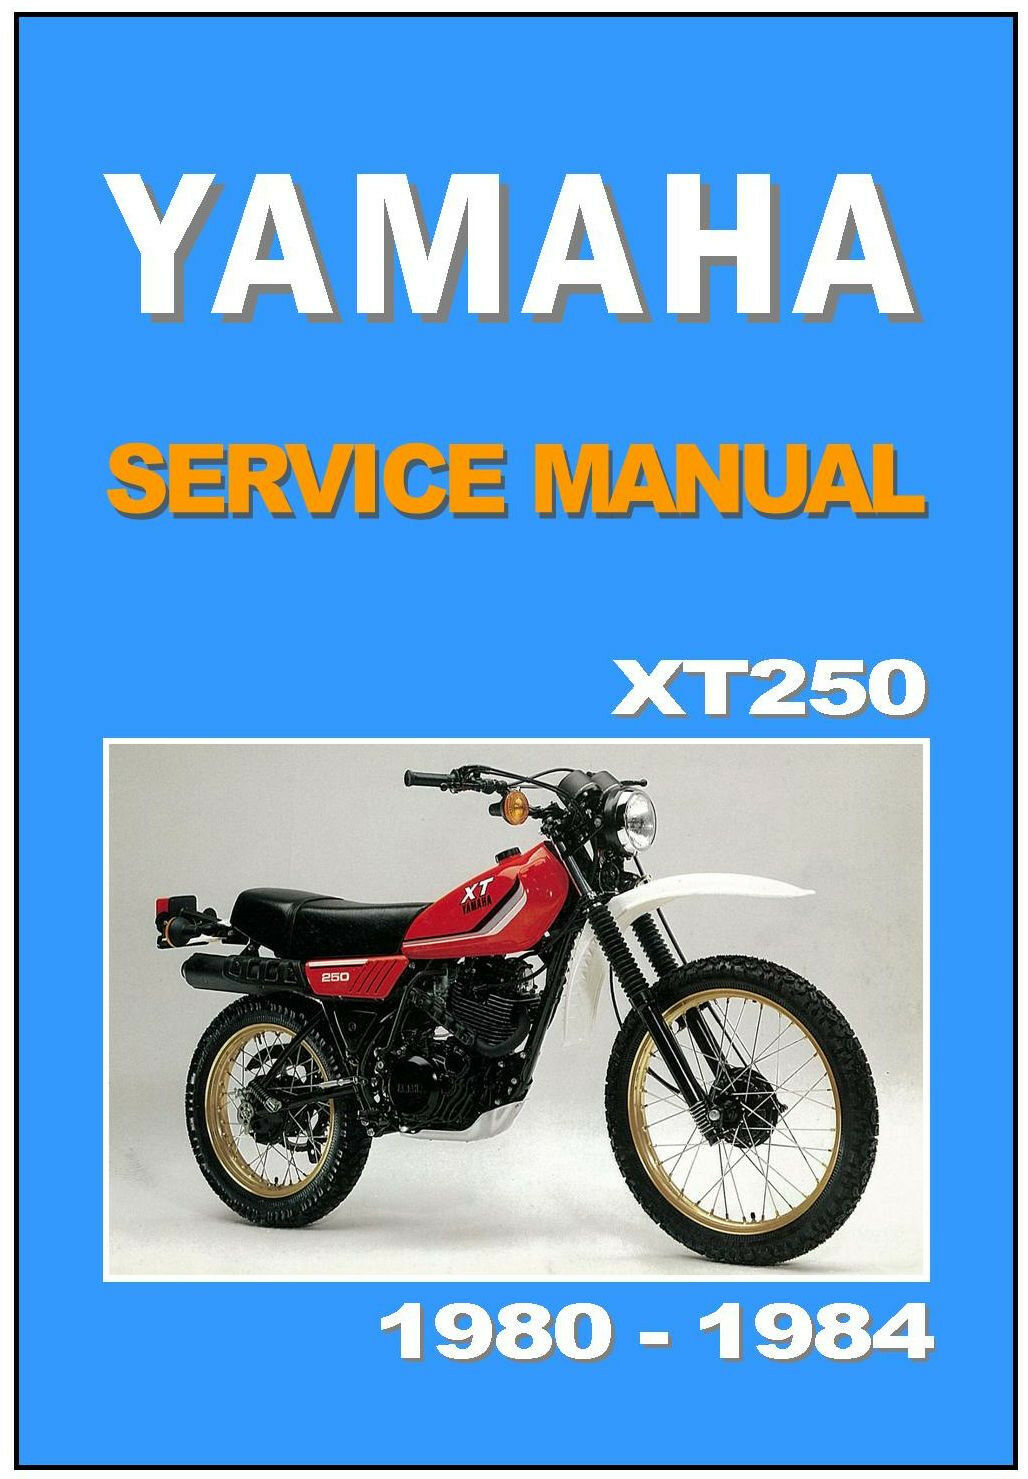 Yamaha Workshop Manual Xt250 For 1980 1981 1982 1983 1984 Service Wiring Diagram Xs1100 1978 1 Of 5only Available